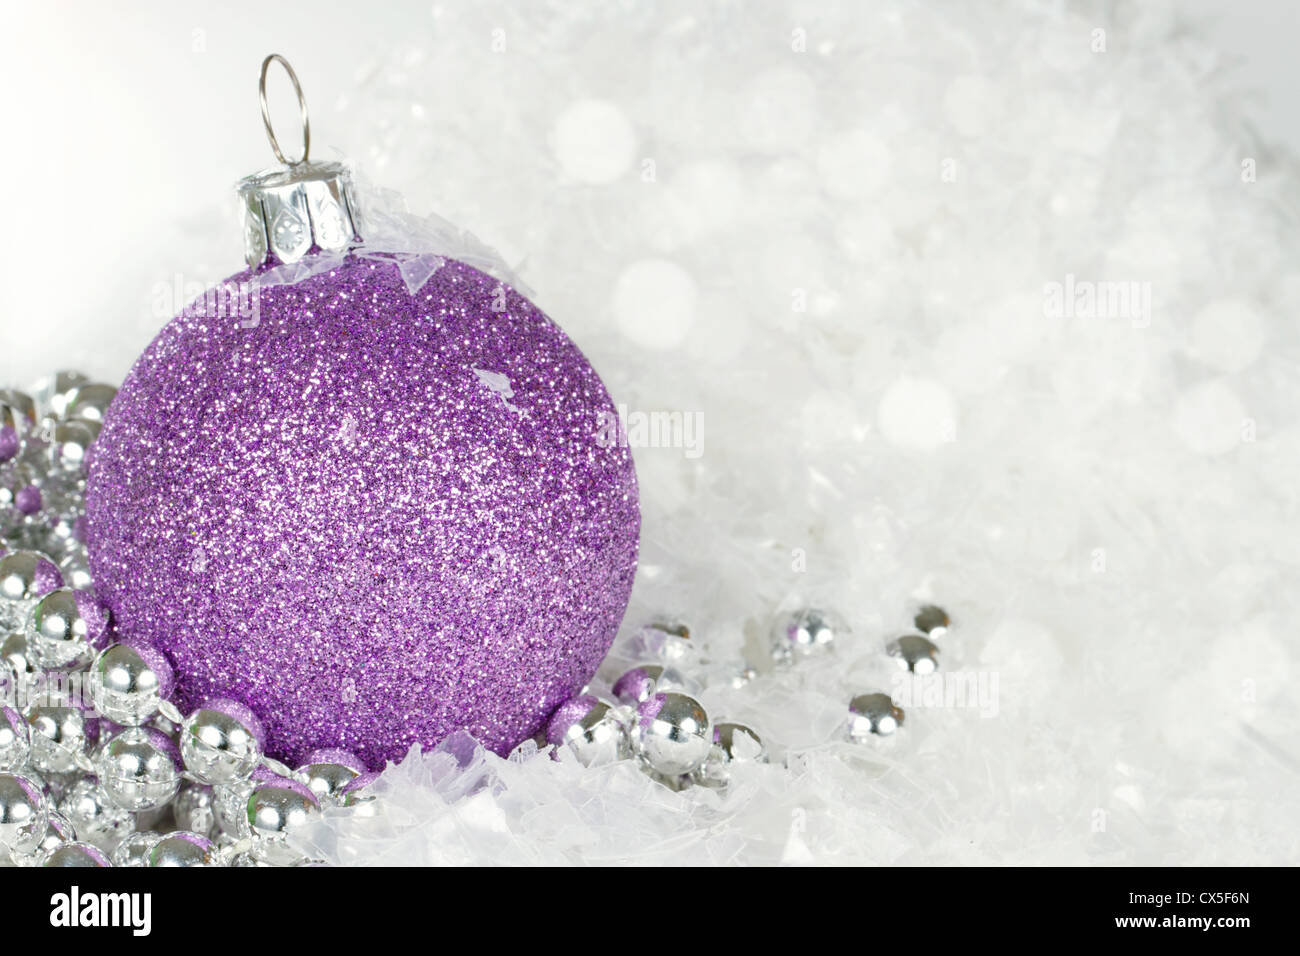 Christmas Purple.Purple Christmas Bauble With Silver Decorative Beads With